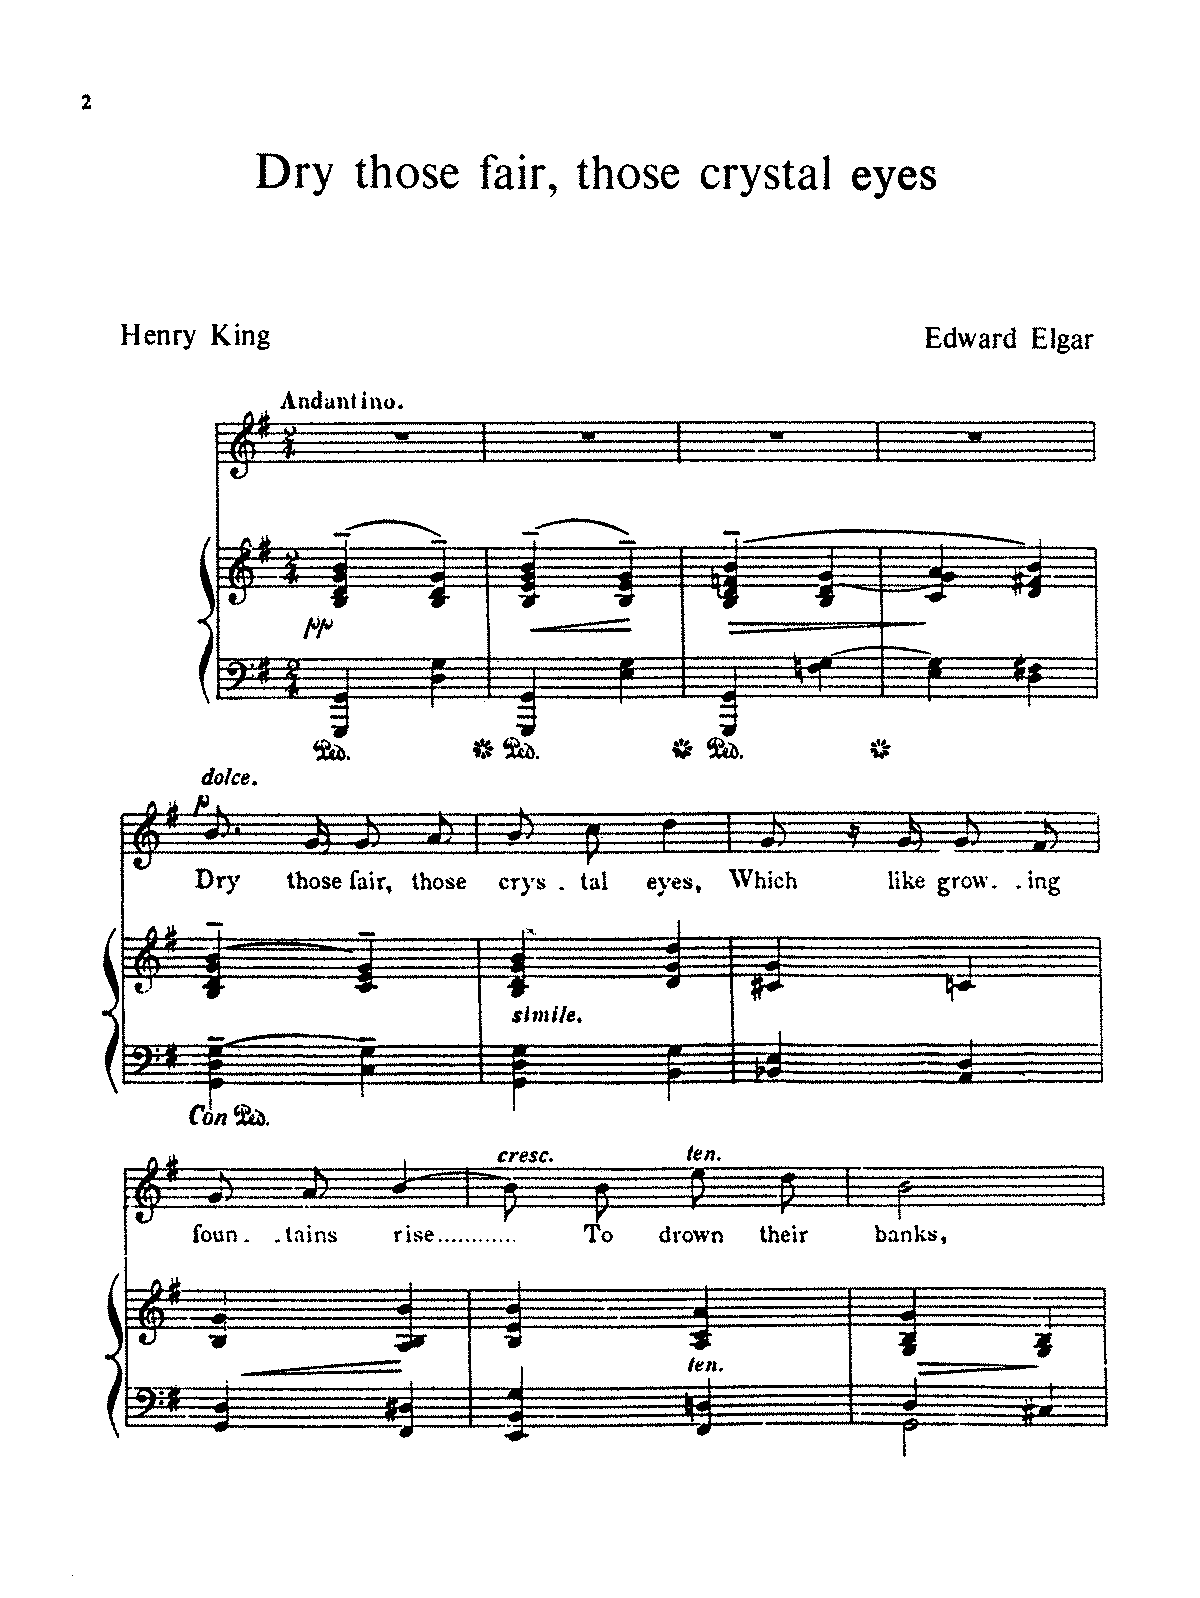 PMLP118000-Elgar - Dry those fair those crystal eyes (voice and piano).pdf